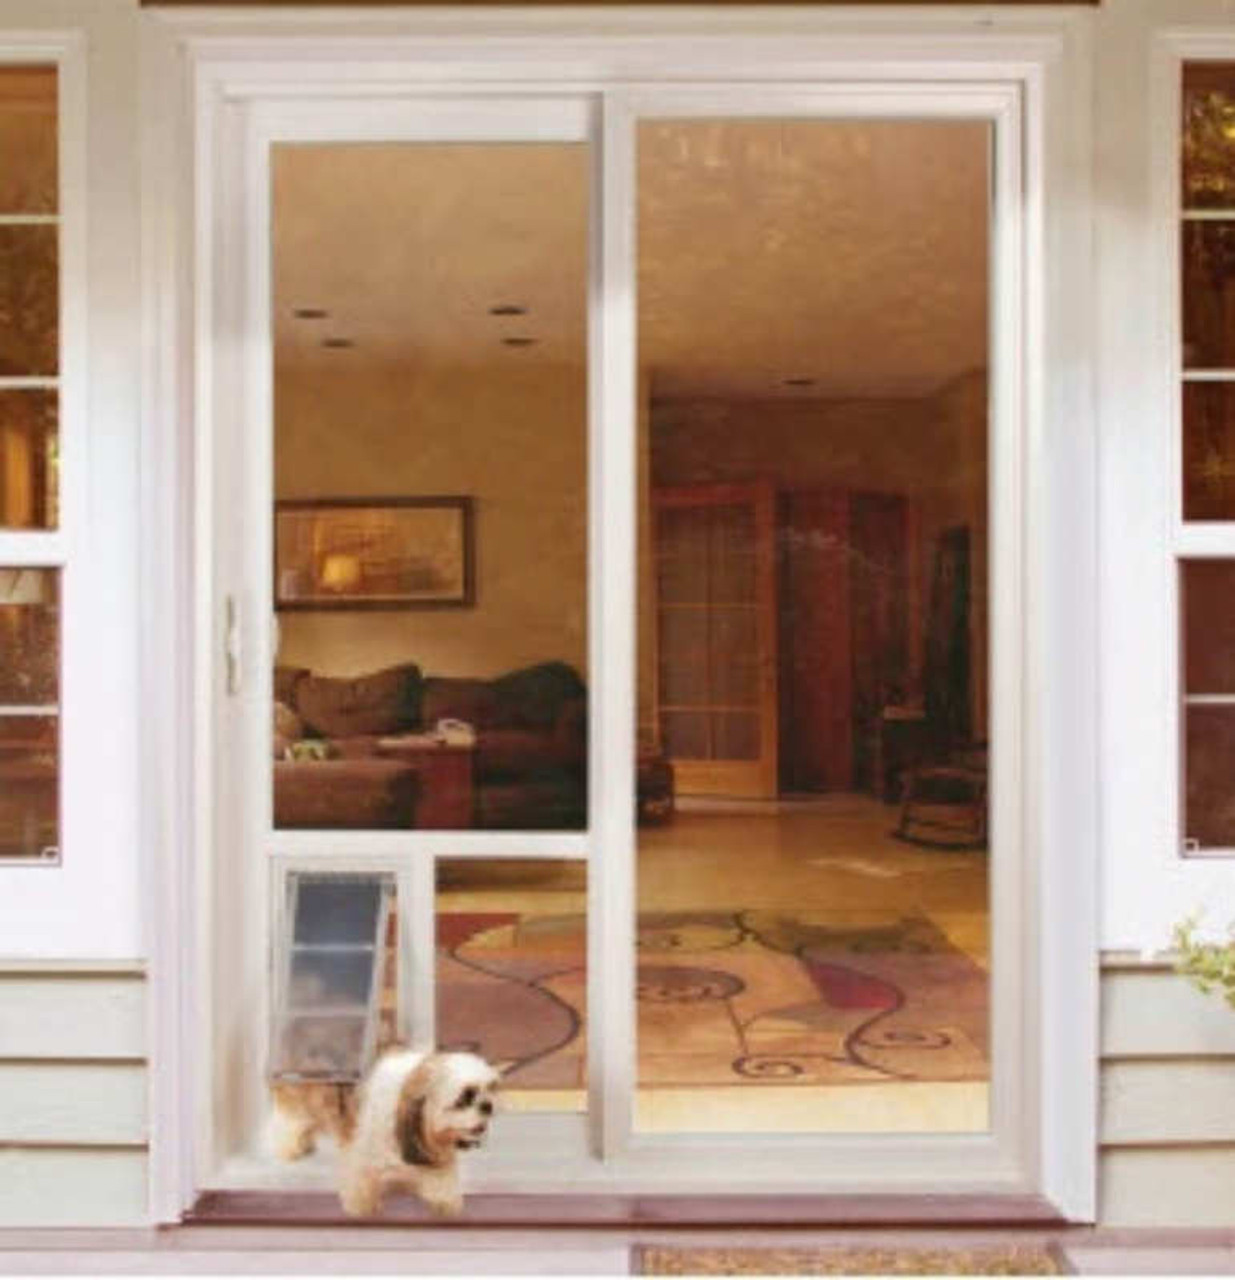 Captivating Pet Door Guys In Glass Doggy Doors Is A Replacement Window For Your Sliding  Door Or